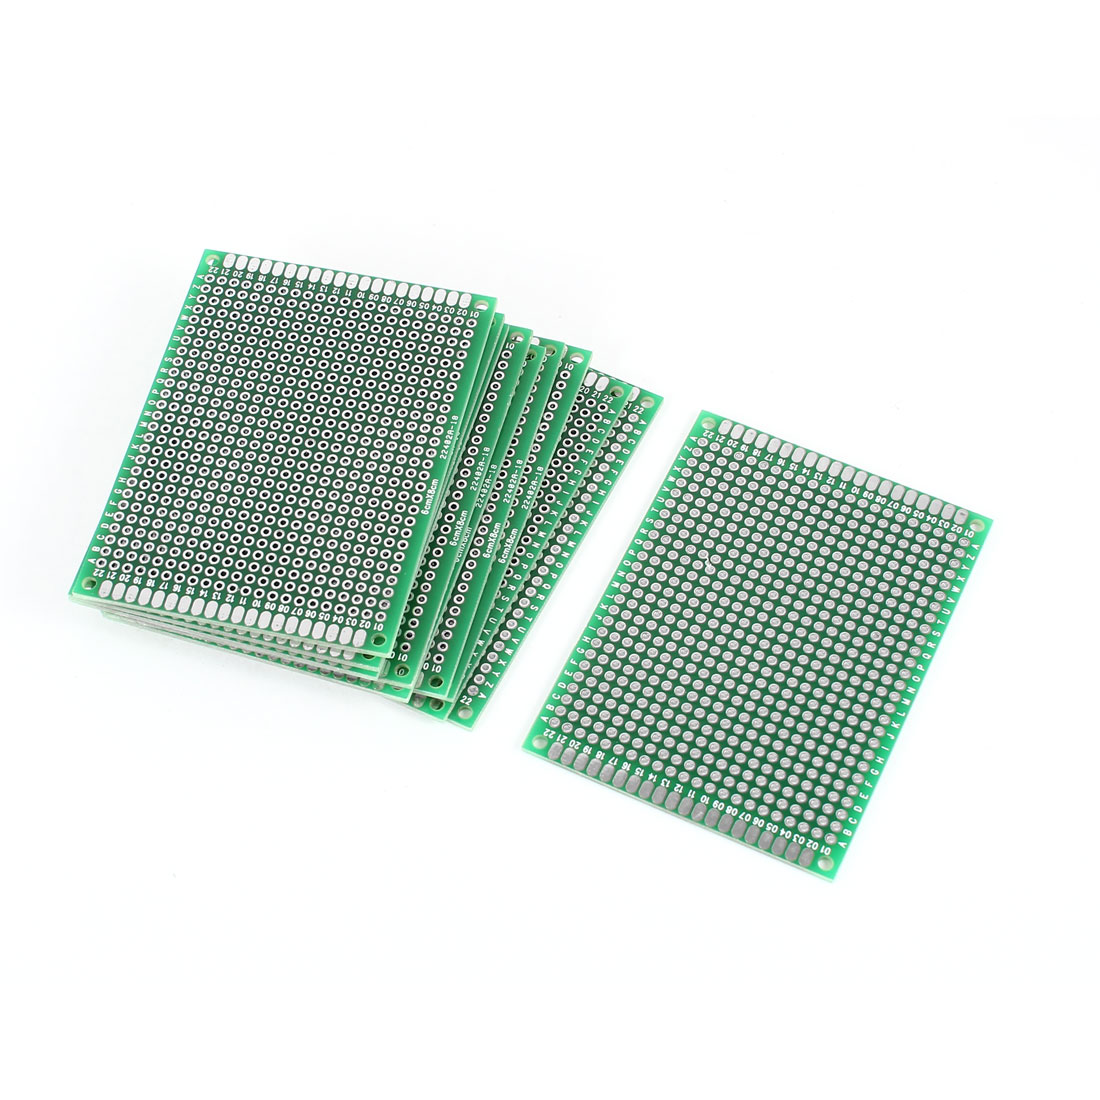 10 PCS 6cm x 8cm FR-4 Double Sided Prototyping Experiment Matrix Tinned Universal PCB Print Circuit Board for DIY